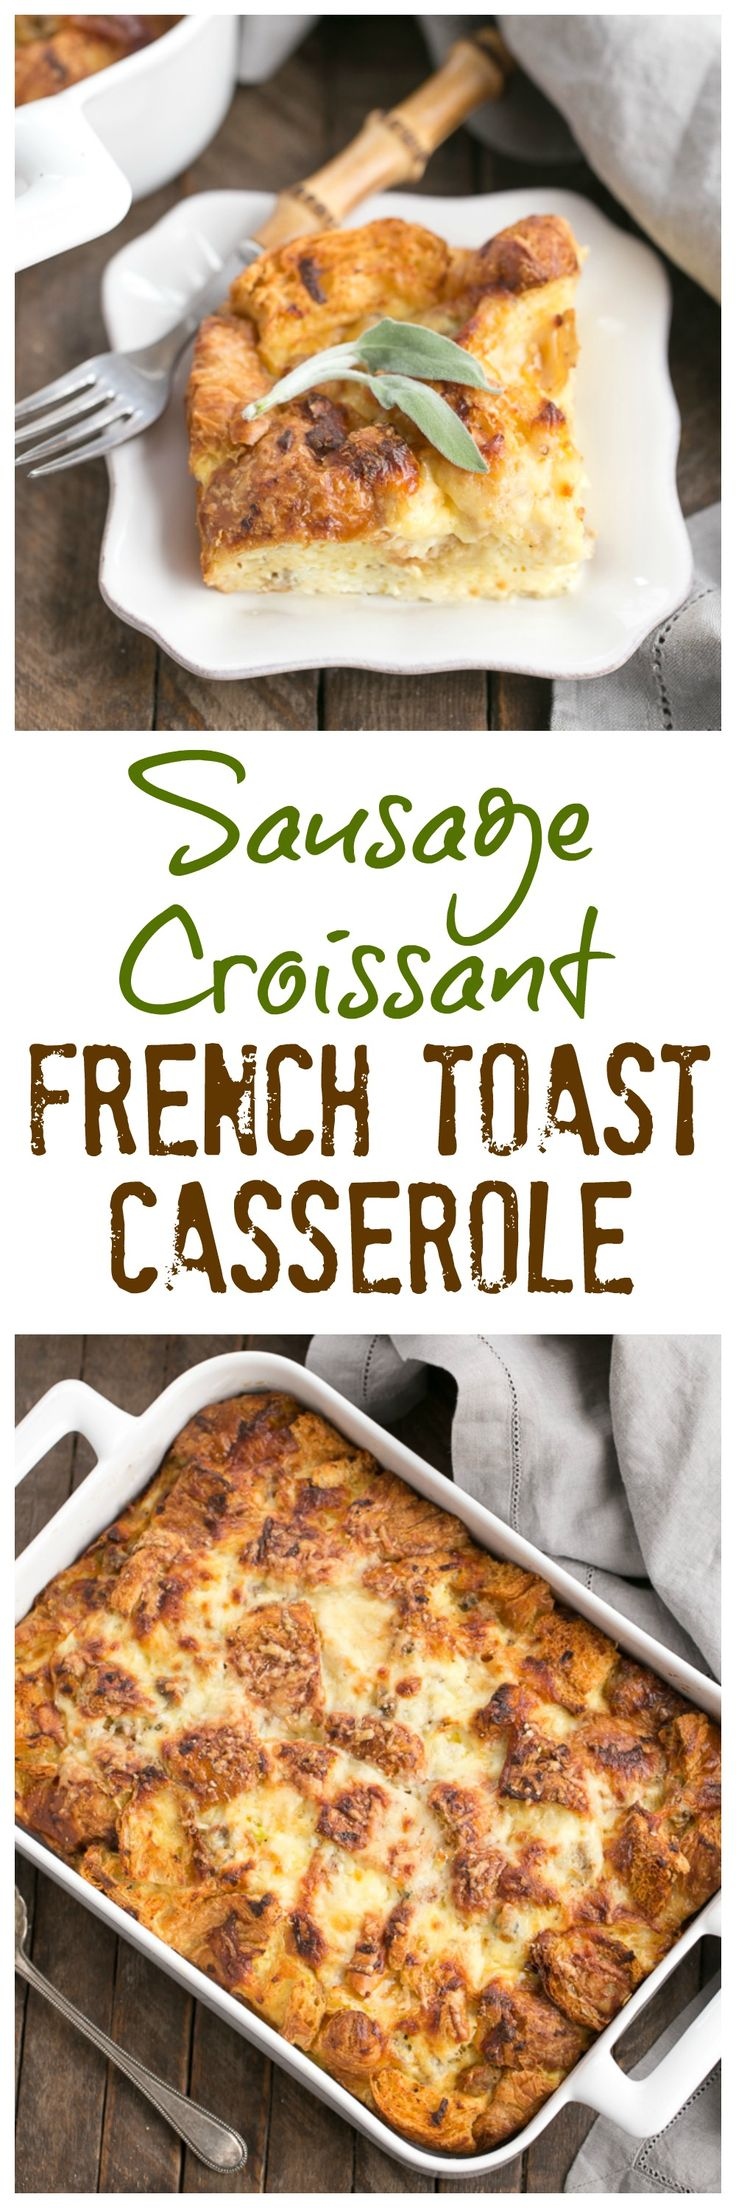 Sausage Croissant French Toast Casserole